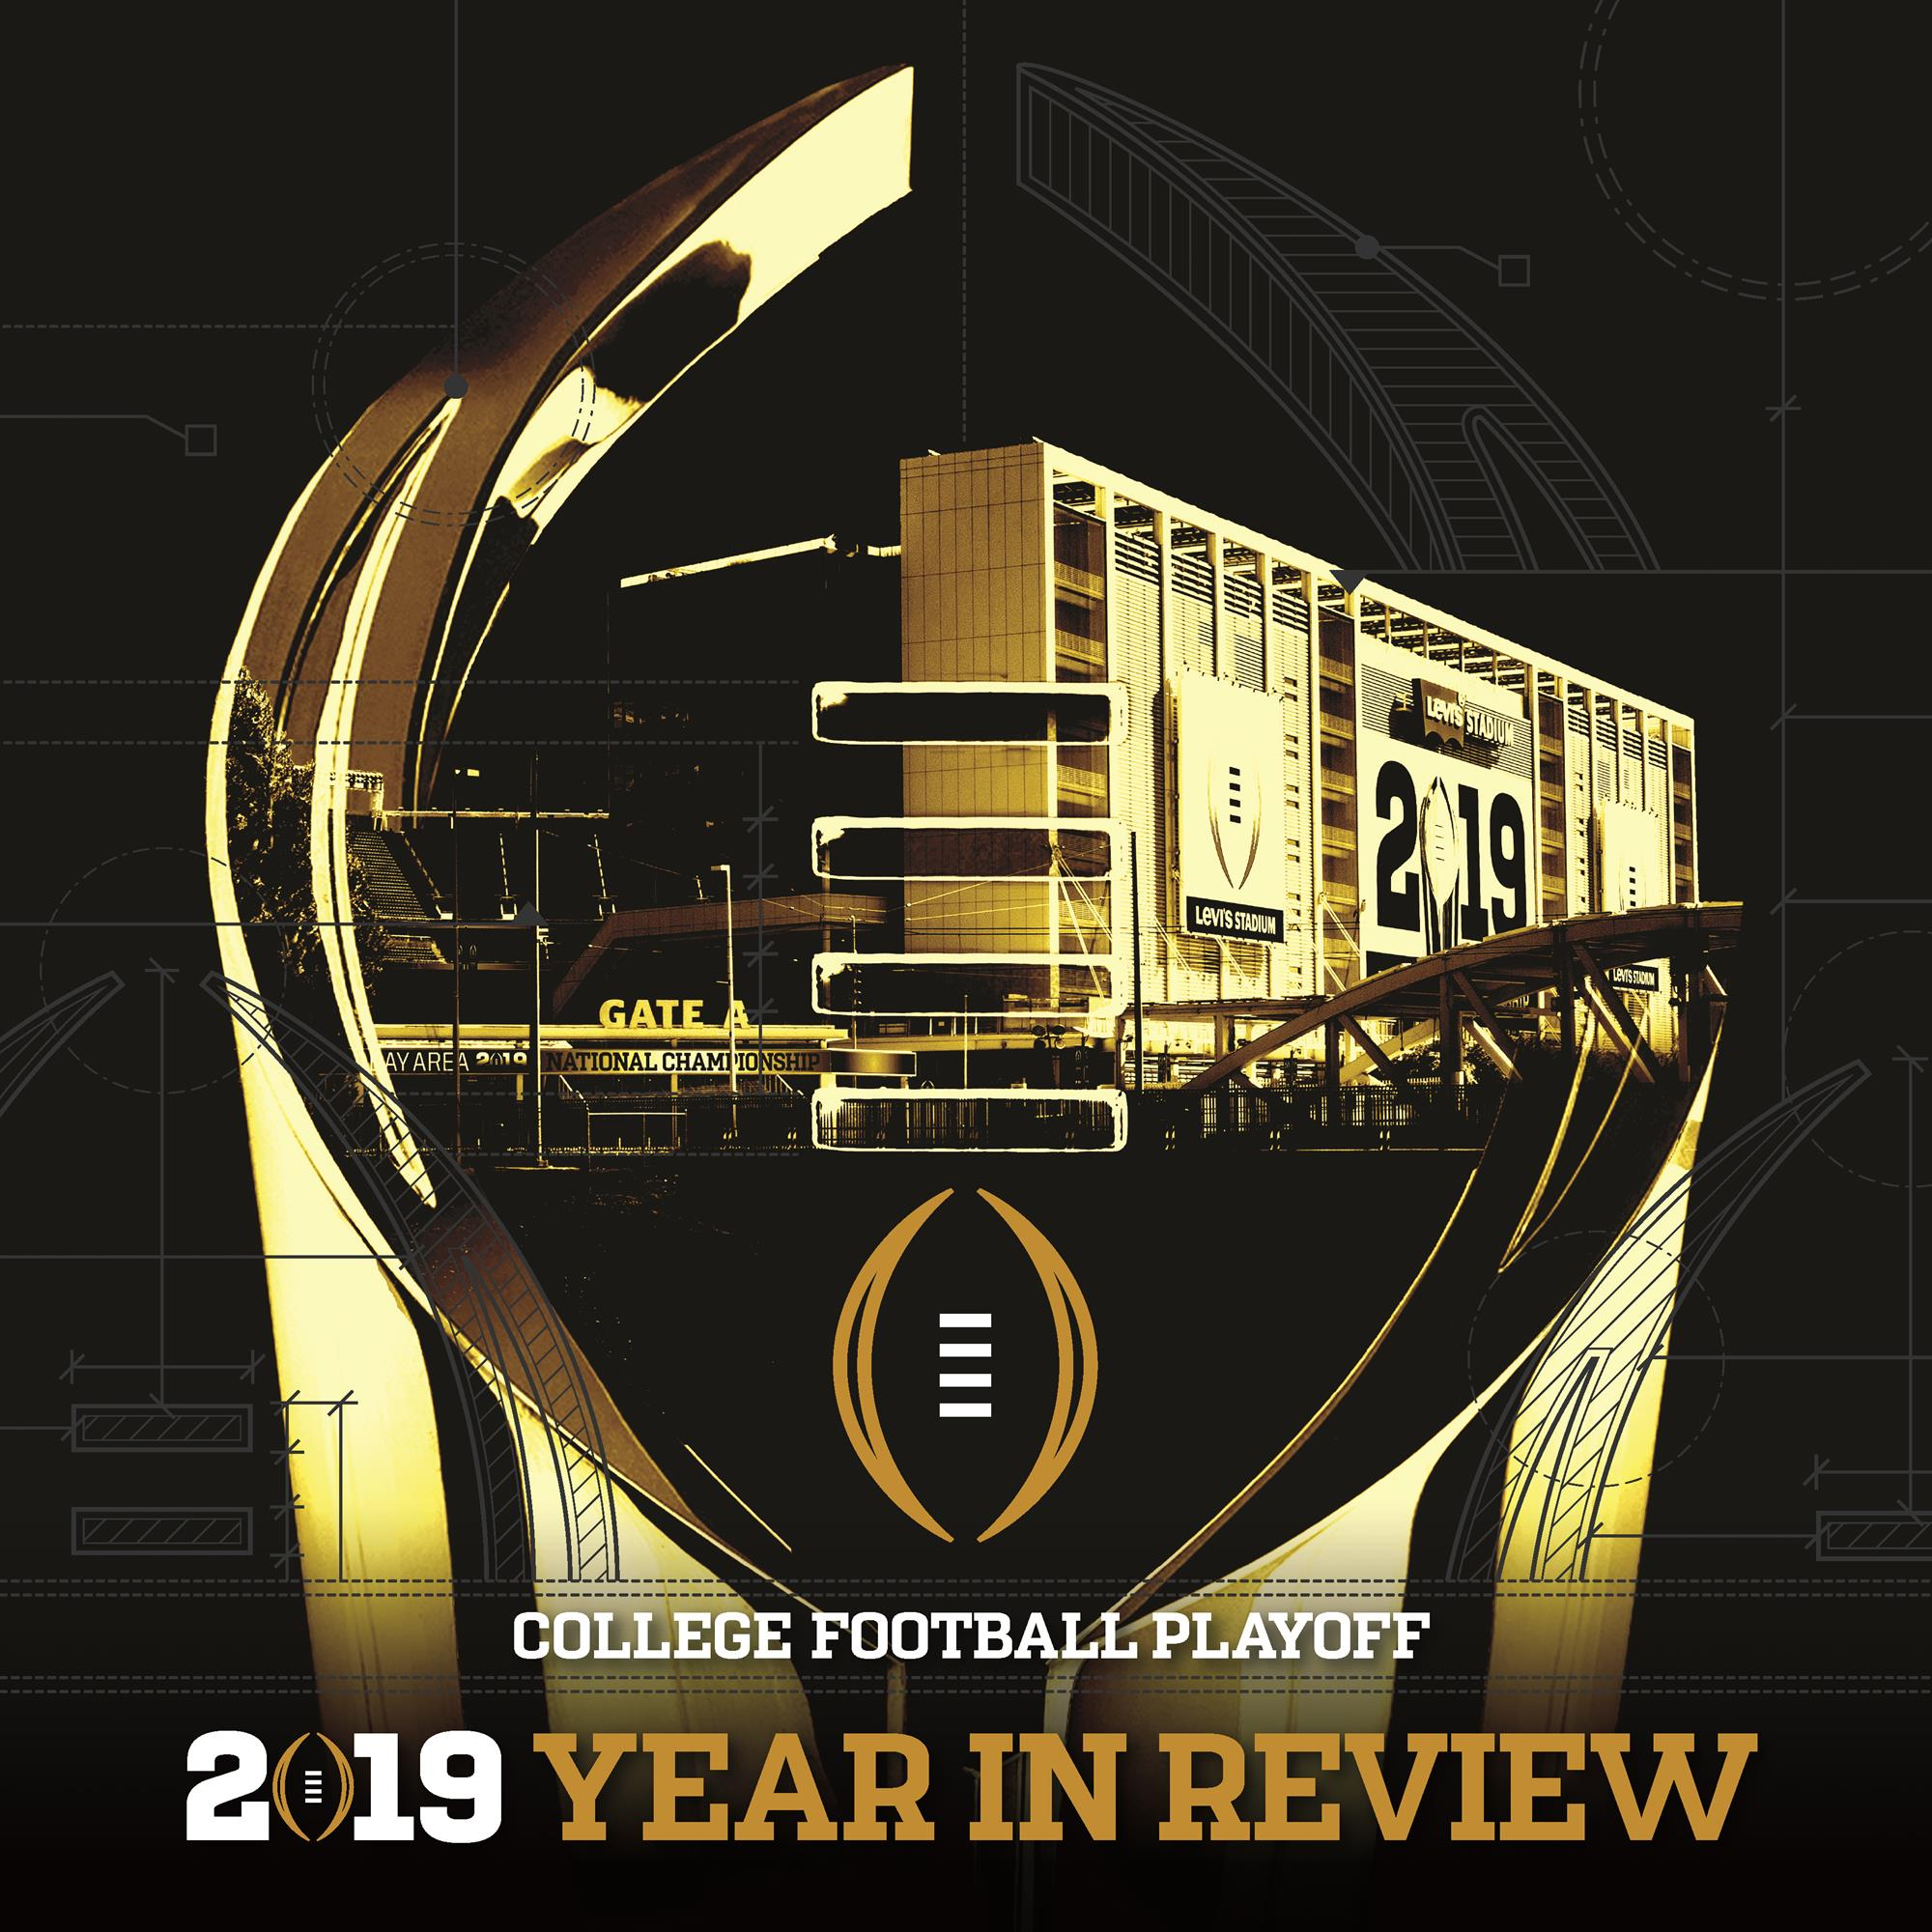 2019 Year In Review College Football Playoff